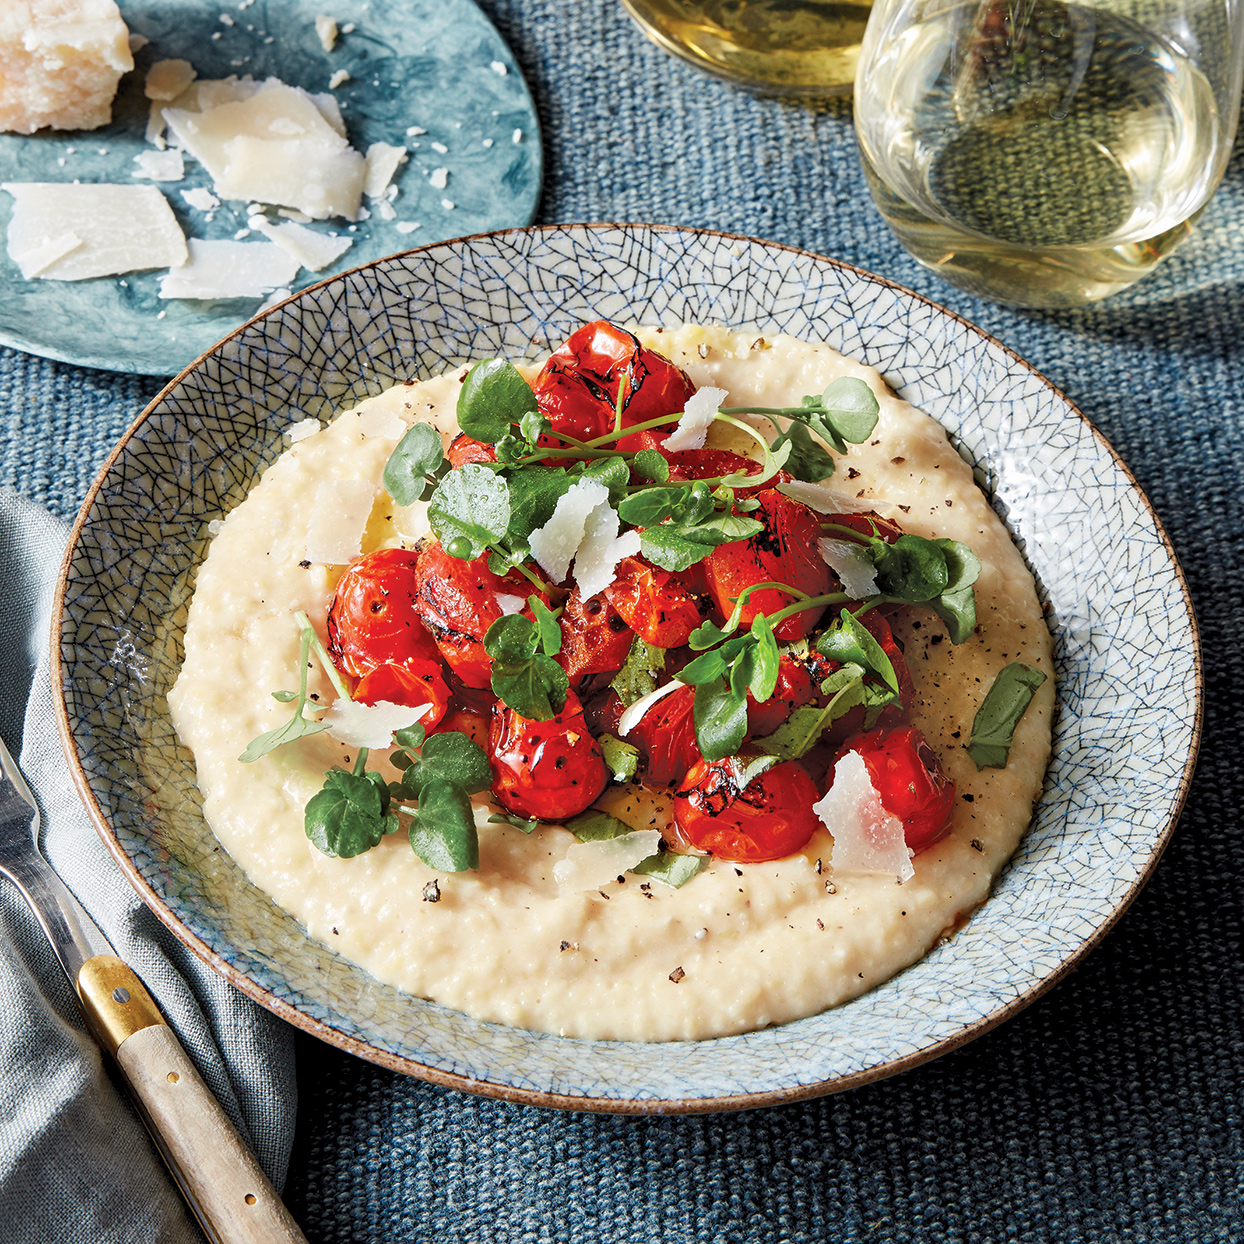 Searching for an easy yet elegant dinner-party dish? This recipe is for you. The lightly charred cherry tomatoes (you can also use grape tomatoes) are not only a vivid topping but also add sweet smokiness that complements the polenta.